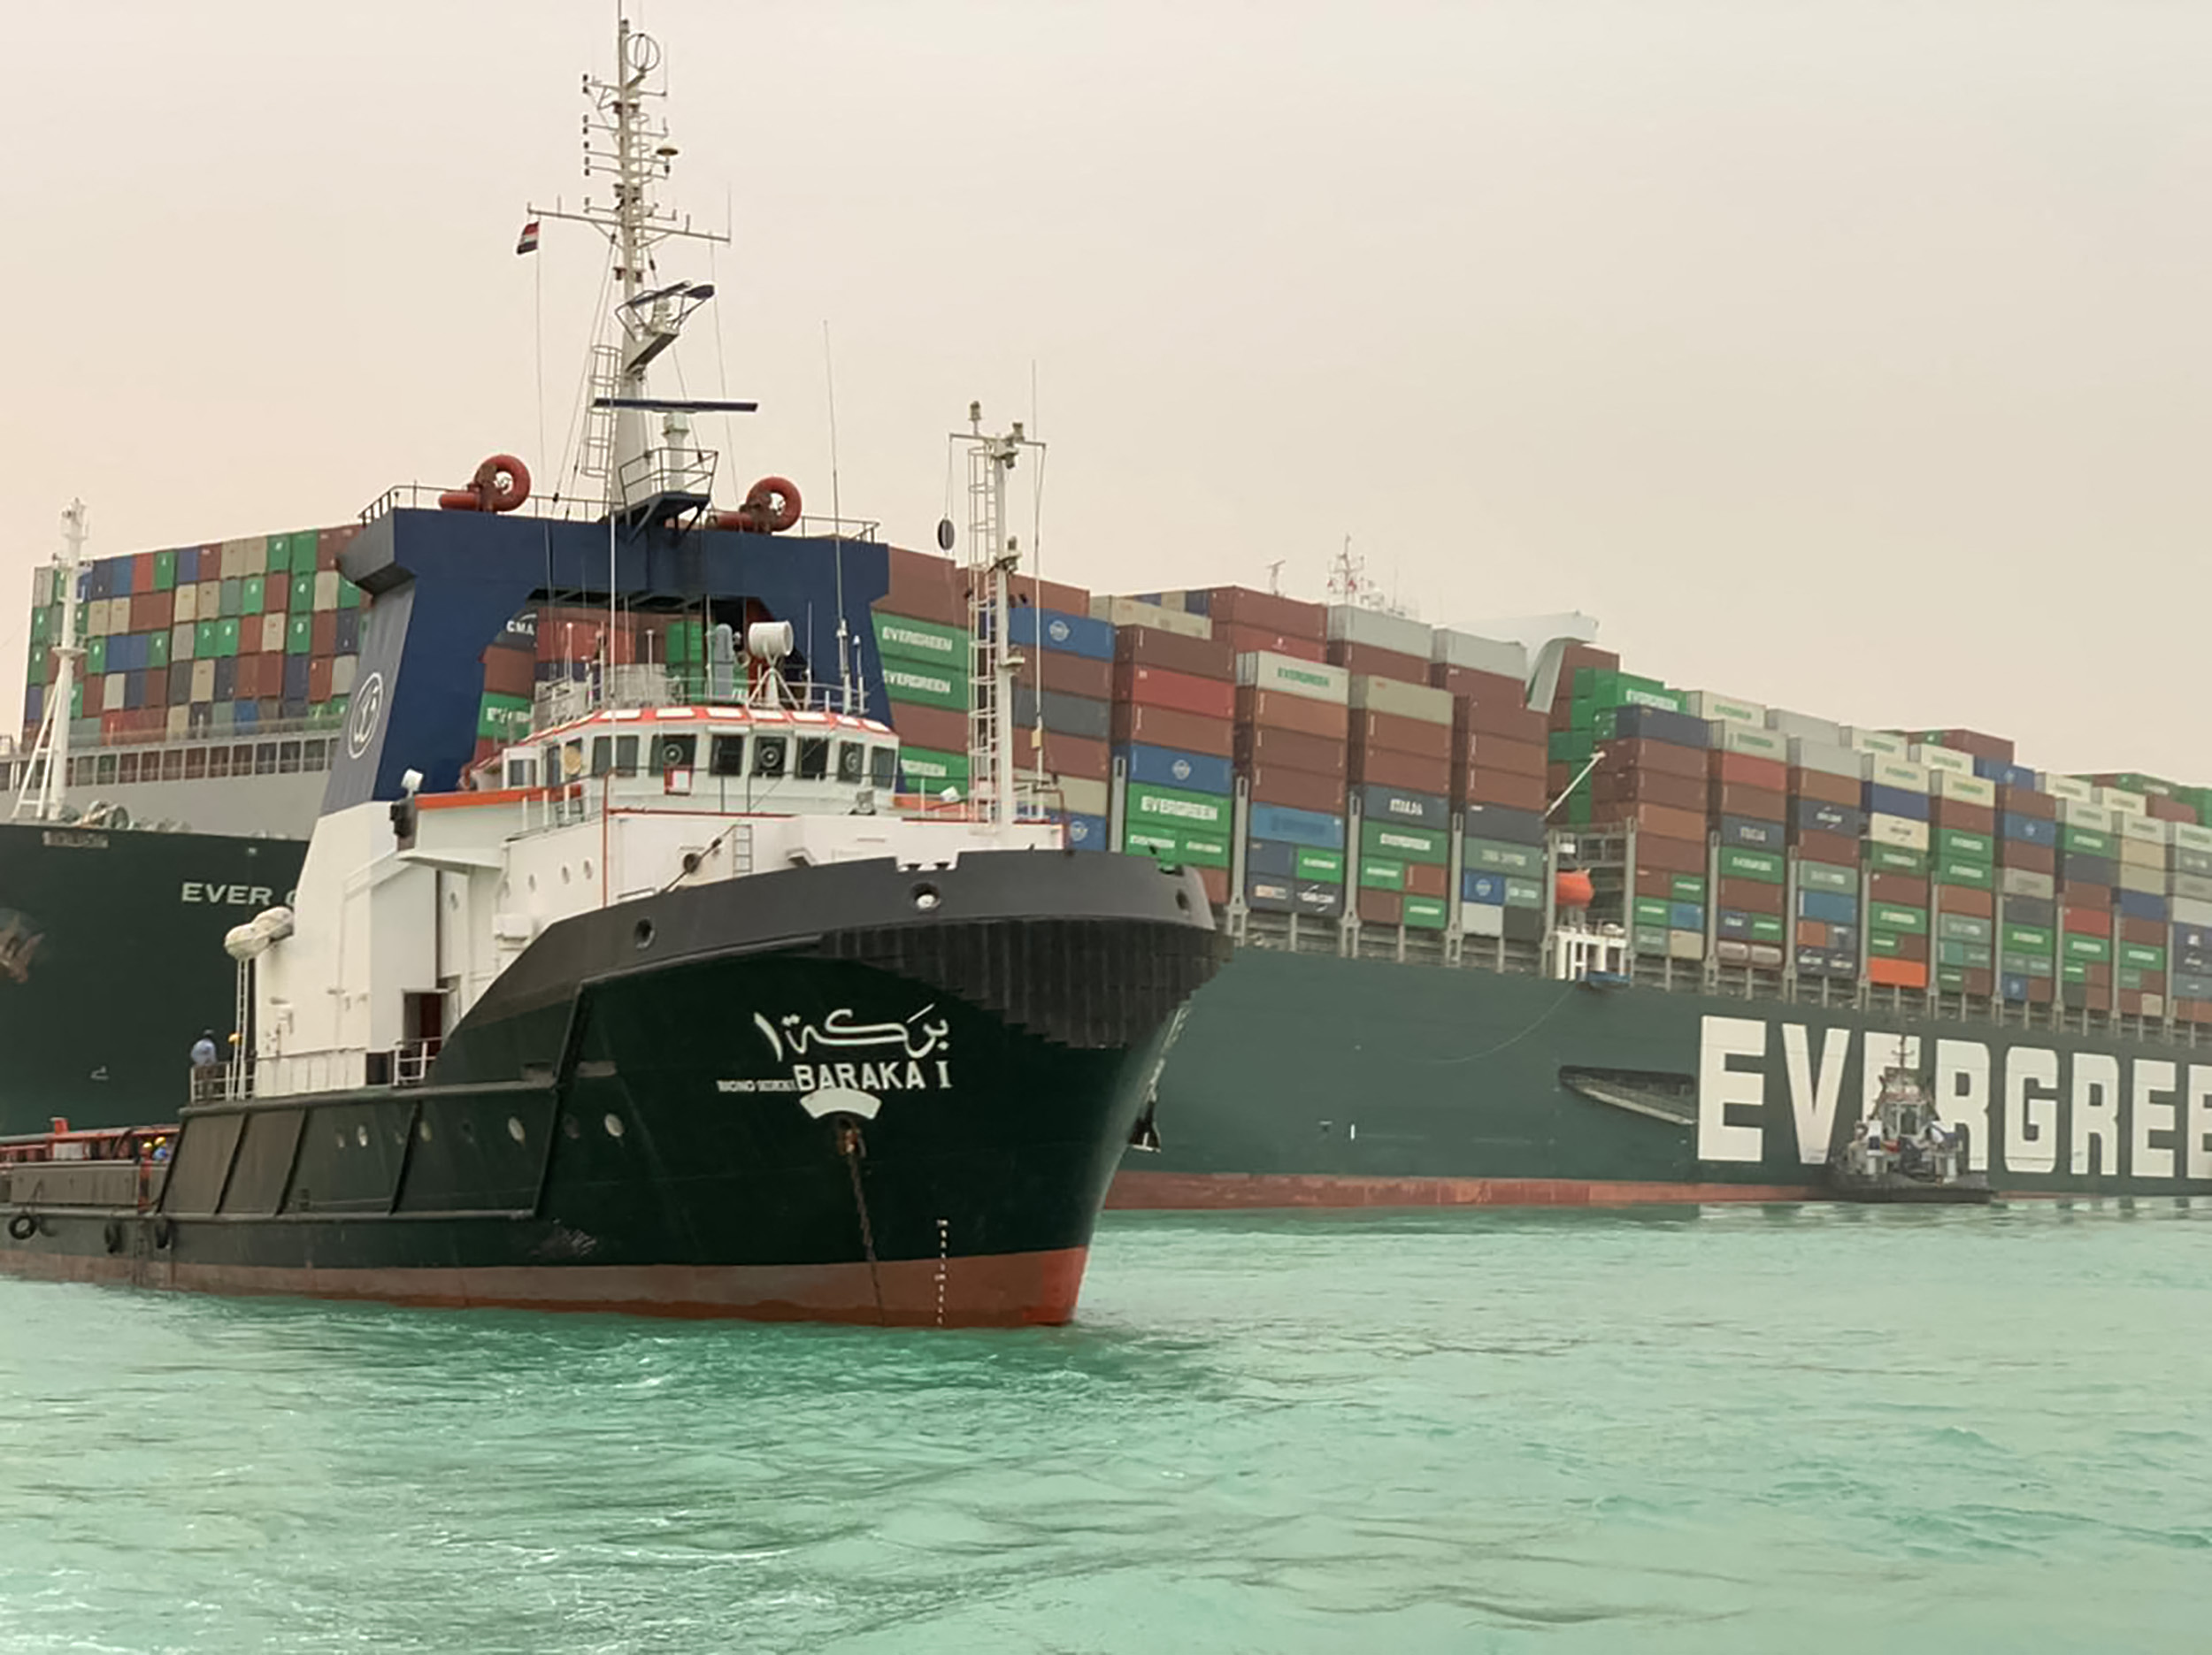 Suez Canal traffic resumes after stranded container ship freed